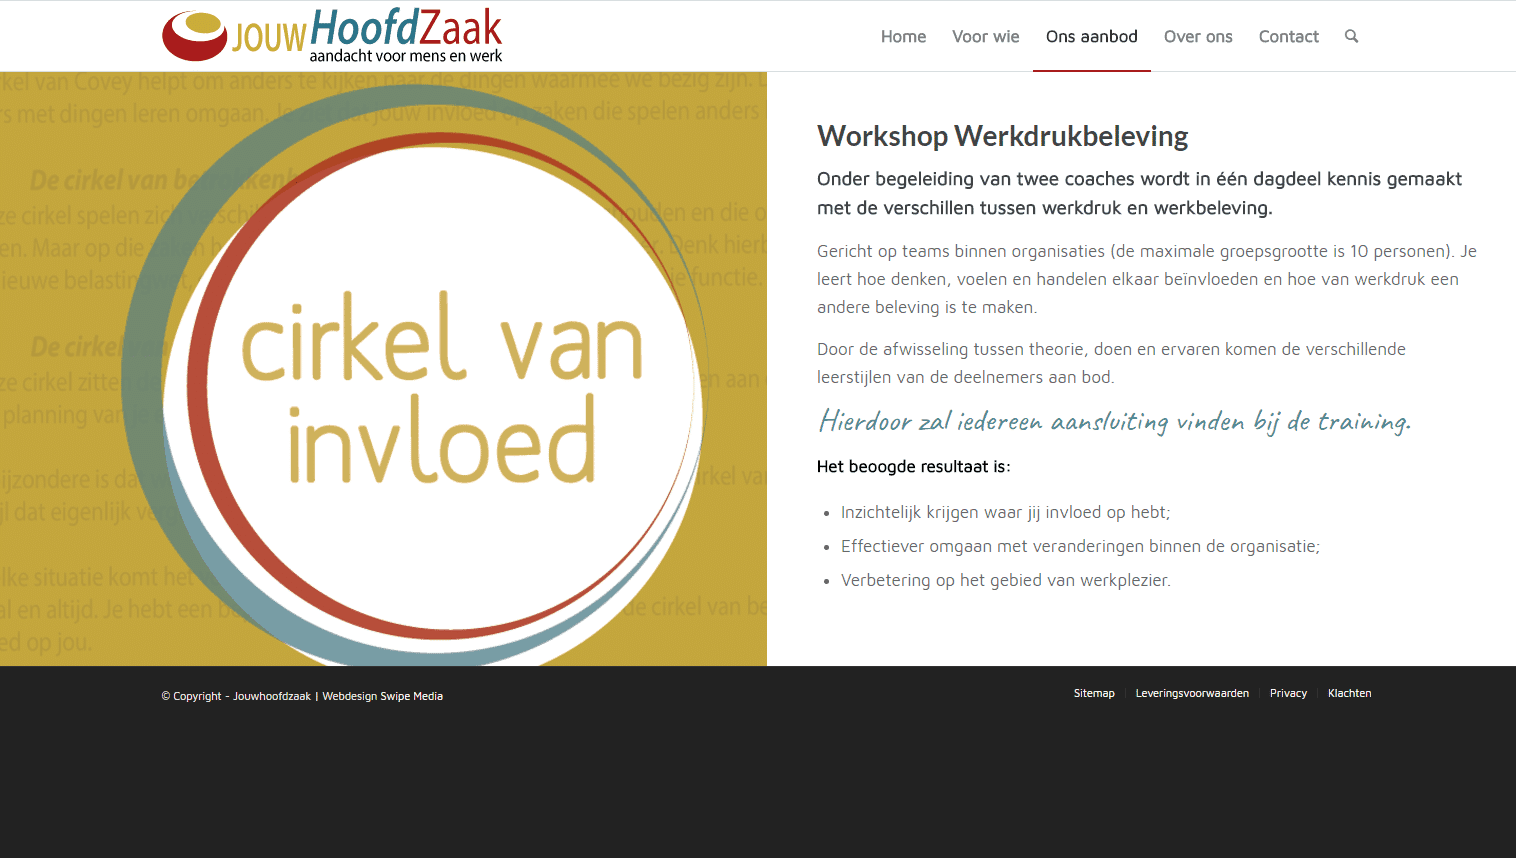 Jouhoofdzaak-Workshop